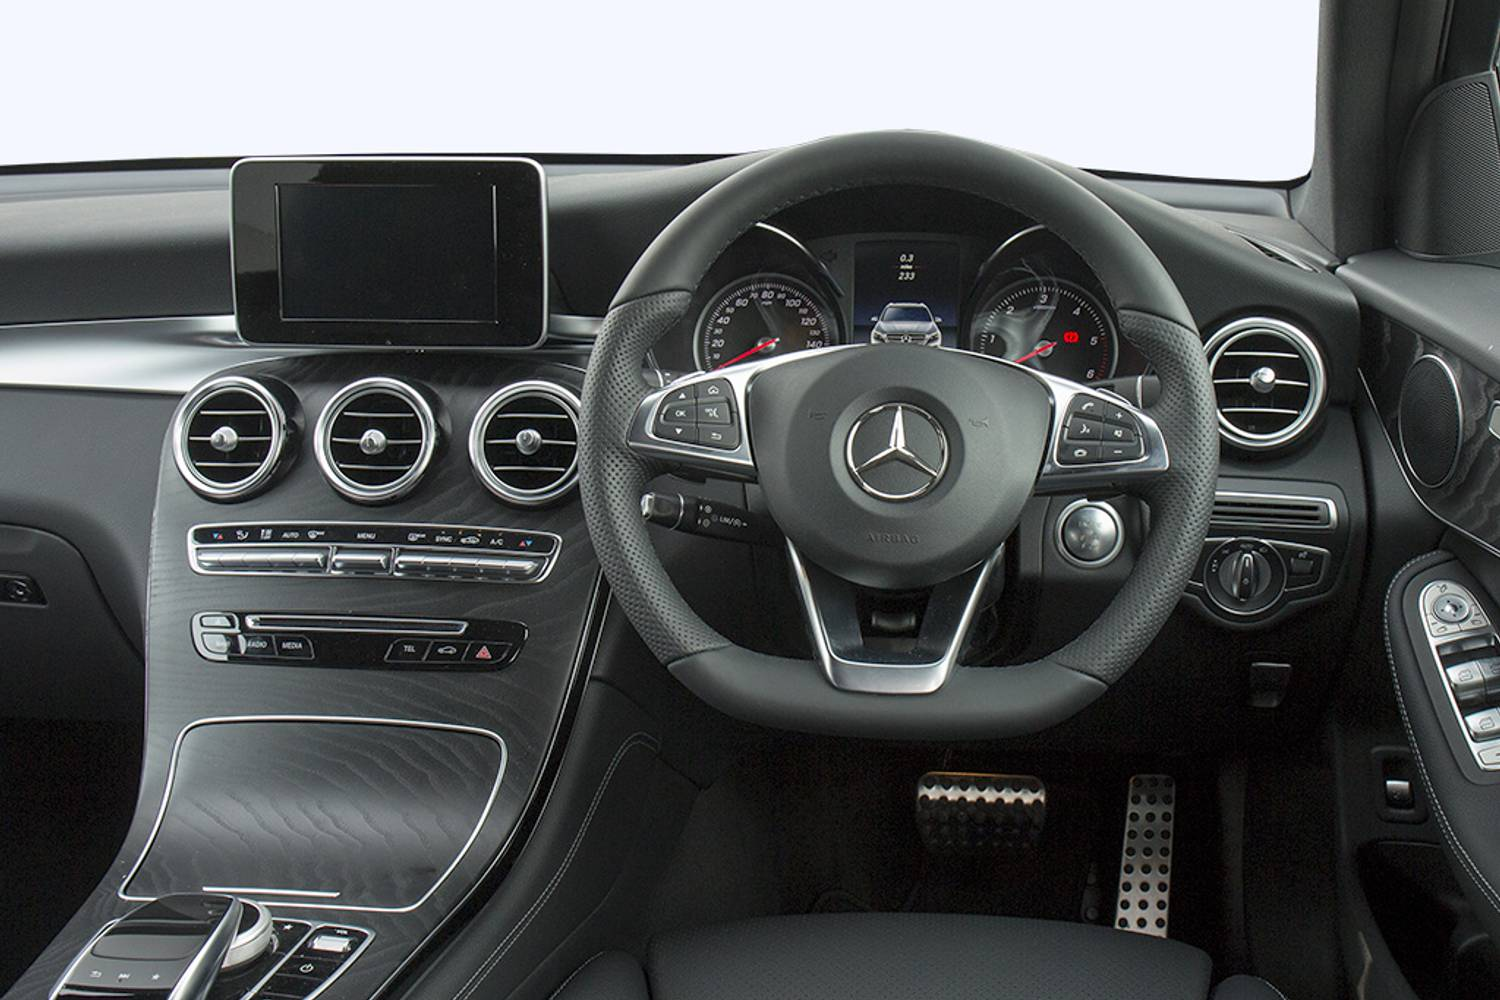 Mercedes Ml350 Price 2017 >> 100+ [ Mercedes Benz Silver Lightning Interior ] | Spy Shots 2012 Mercedes Ml Nearly Camo Free ...